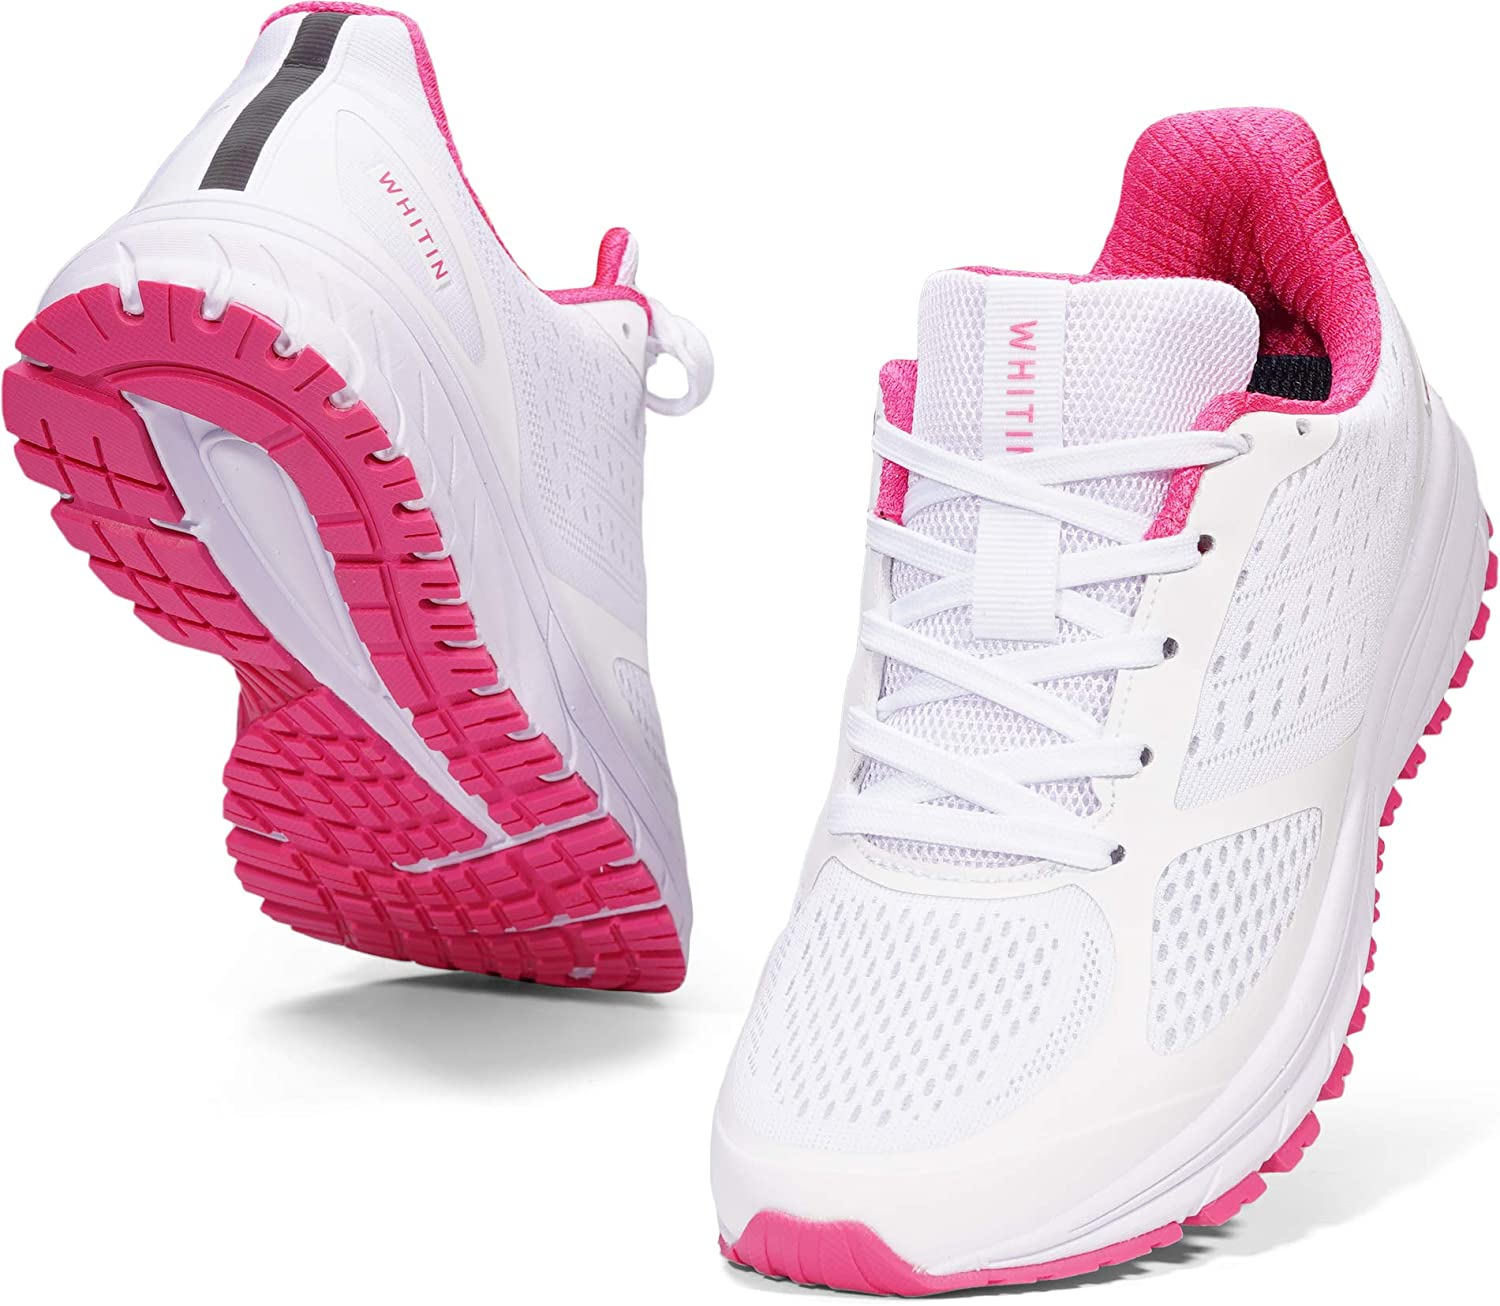 WHITIN High quality Women's High material Running Shoes Sneakers Walking Breathable